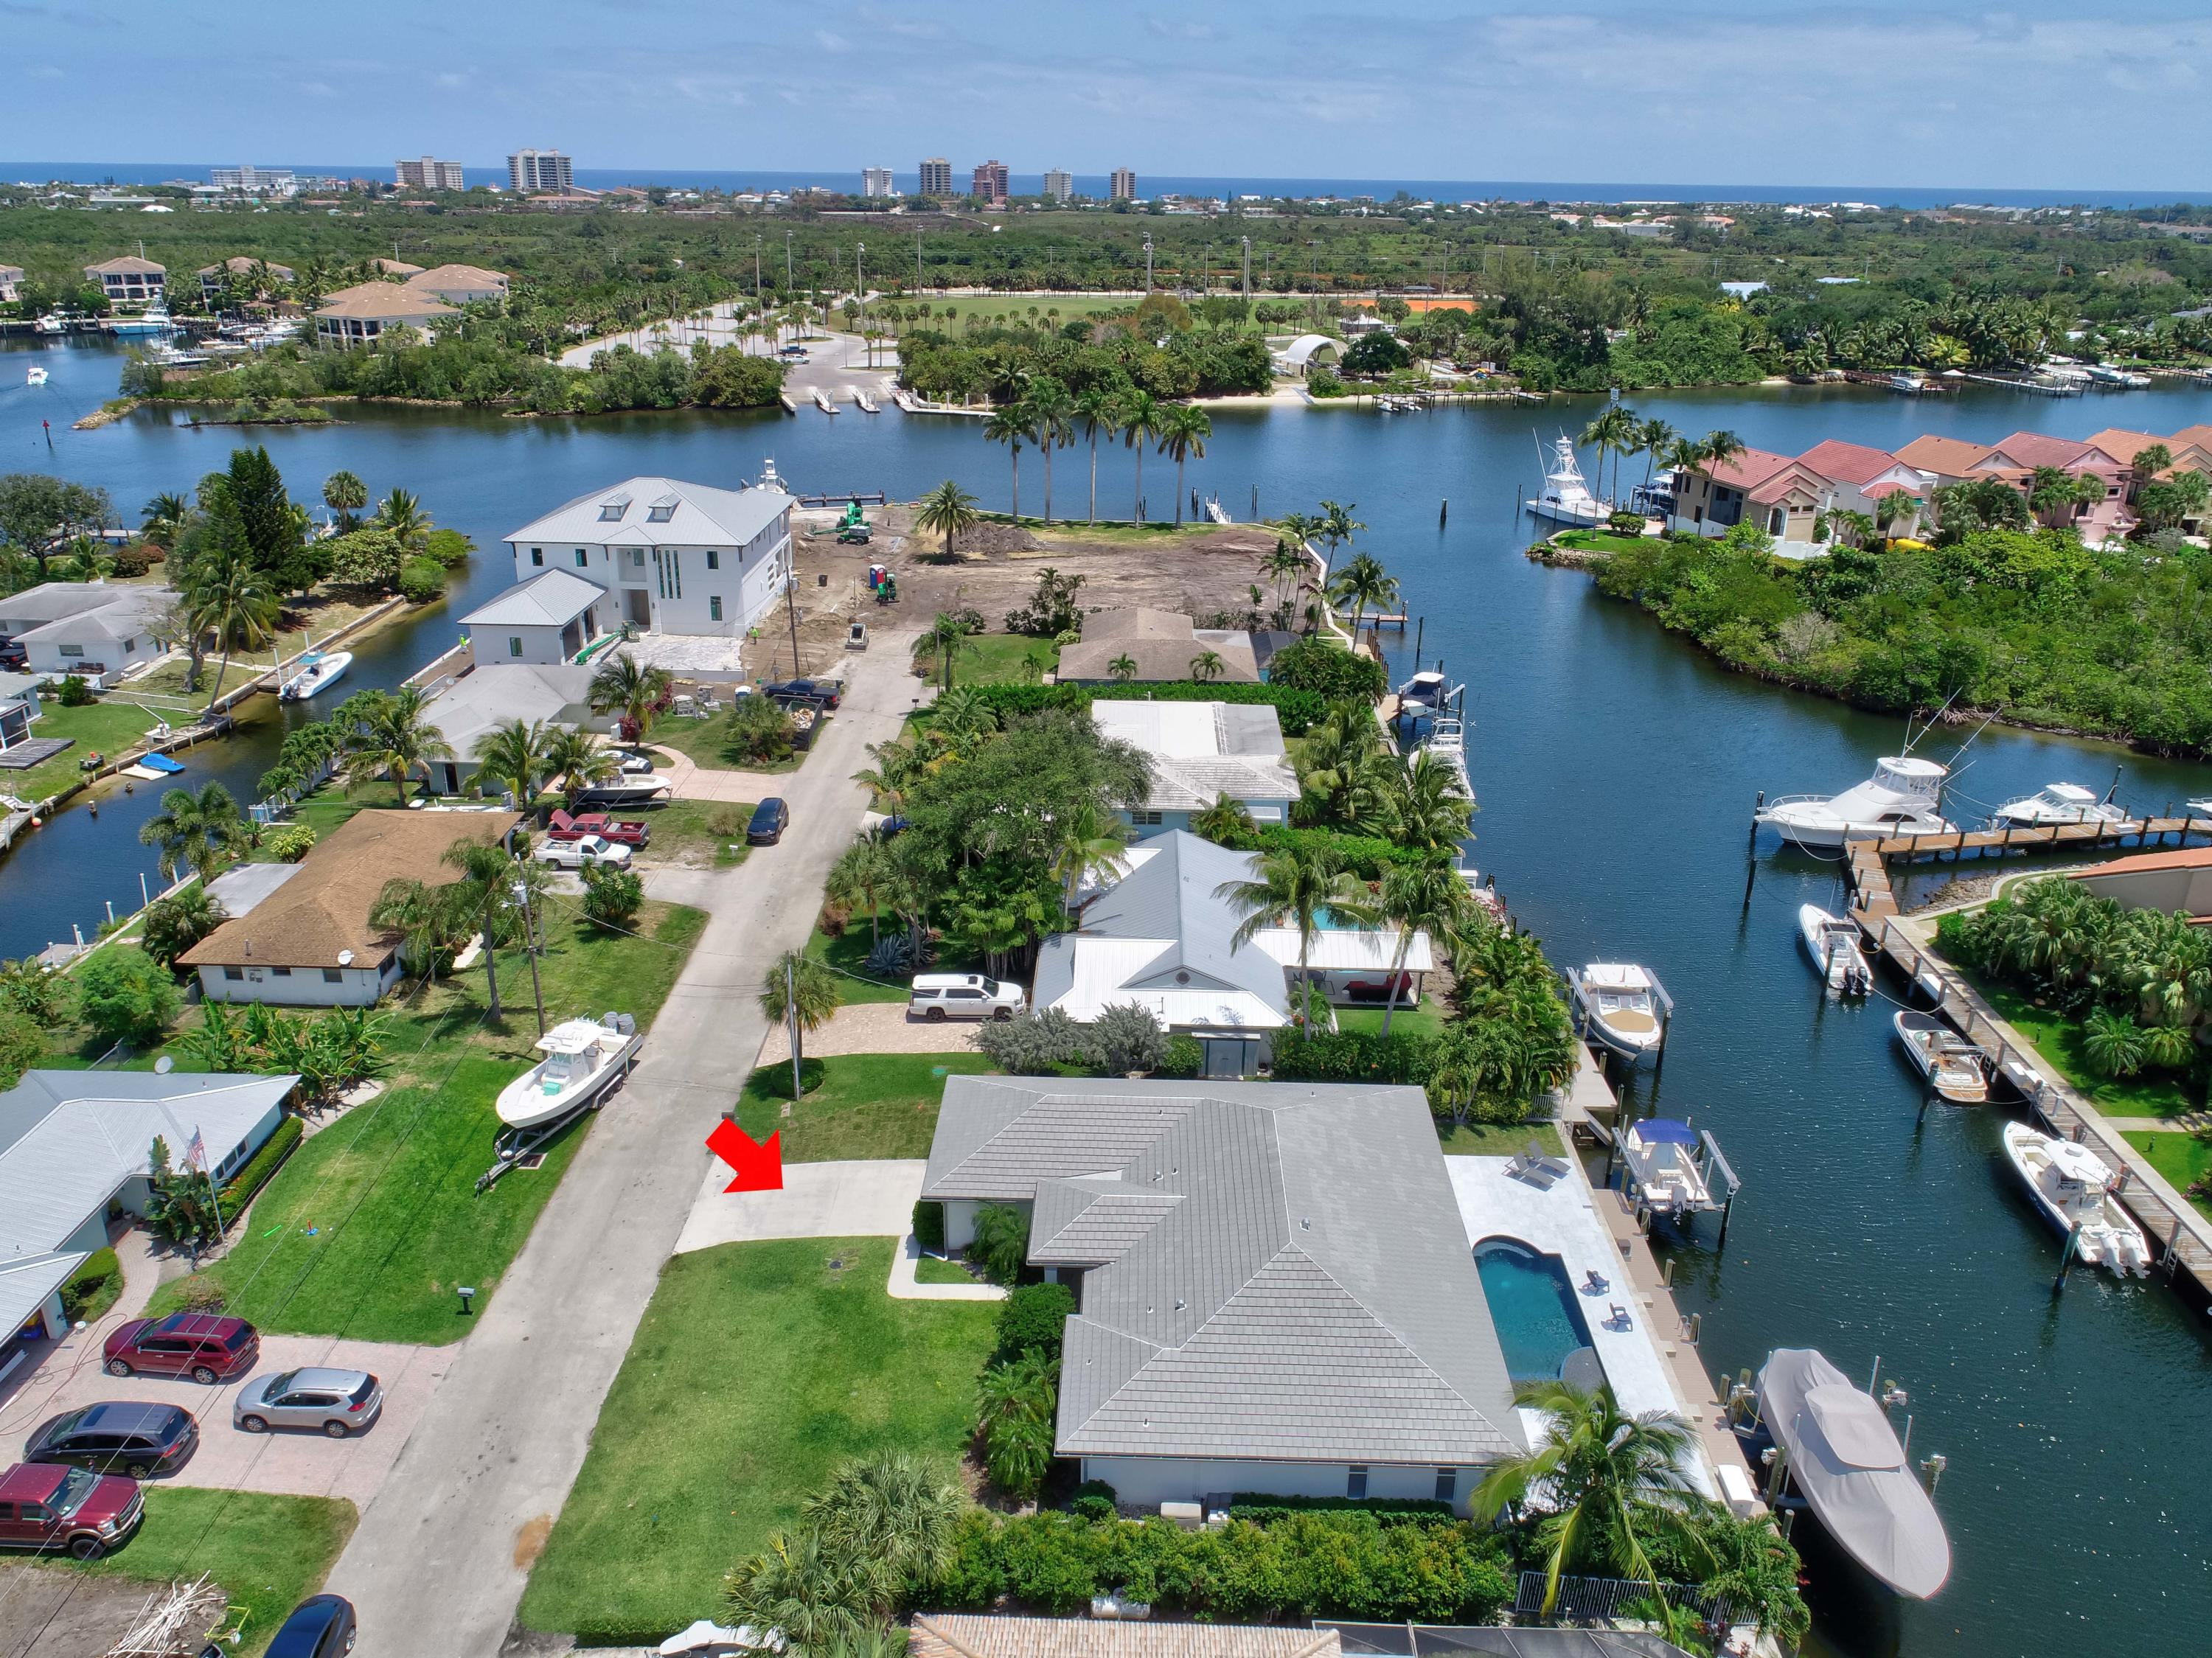 A Boater's Dream! Located in the heart of Palm Beach Gardens, this stunning intracoastal pool residence has been completely renovated and features 90 Ft of water frontage, 2 separate boat lifts (10K in 2017 and 20K in 2019), new dock (2017), and NEW roof (2020) with picturesque water views, no fixed bridges and direct access to Palm Beach and Jupiter inlets. Meticulously updated and impressive upon entry, this expansive open floor plan has beautiful wood plank tile floors, Level 5 flat smooth finish walls and ceilings, new interior paint, new Plantation shutters, new fans, fixtures and custom California closet systems throughout. Tastefully decorated, this inviting home is encased with tons of natural light and offers a separate dining room with beautiful lighting and custom fixtures. Lavish gourmet kitchen completely remodeled with soft close cabinets, Pompeii Quartz countertops with large center island, subway tile backsplash, top-of-the-line Bosch stainless steel appliances, custom pendant lighting, and built-in bench seating in breakfast area. Generous master suite with designer wall treatments and walk-in closets. Luxurious master bath boasts Quartz counter tops, dual custom vanities, separate jacuzzi tub, large frameless glass shower complimented by subway tile, designer cut-outs and custom shower flooring.  Extras galore include surround sound, whole house Kohler generator with 500-gallon propane tank, new hurricane front doors, new gutters, Ecobee smart thermometer and Lutron smart switches, Emtek hardware throughout, and new entryway and porch tile flooring. Separate laundry room with oversized front load LG washer and dryer and abundance of storage space. Bask in your stunning outdoor paradise! Spacious covered patio updated with shiplap ceilings, new fans and LED lighting, spectacular brand-new saltwater pool complete with Pentair pool equipment, new sandblasted marble tile around pool deck and sweeping intracoastal canal views from your private fenced backyard.  Flawlessly maintained and decorated to perfection, this intracoastal home exudes first class quality and the finest details that are rarely available in Palm Beach Gardens!